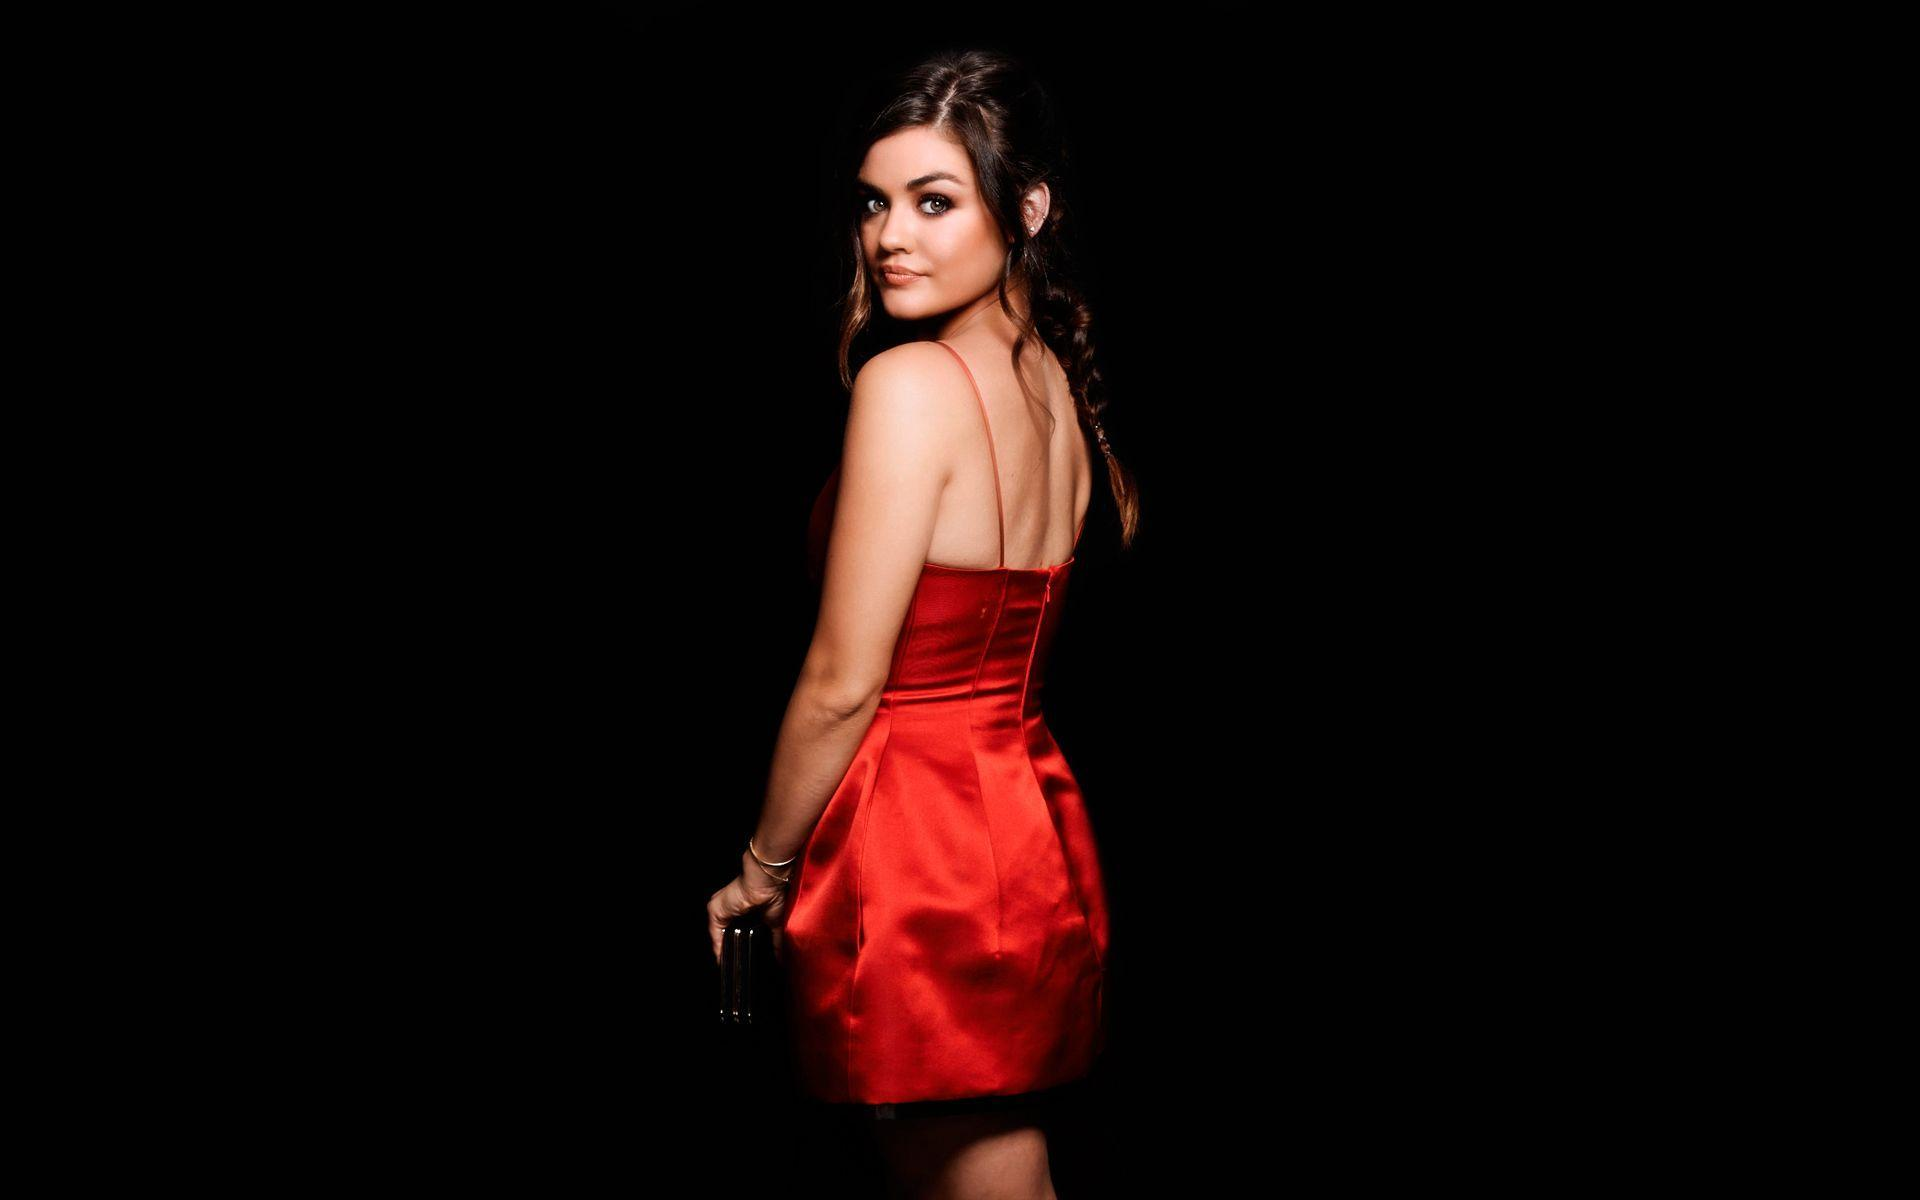 Actress Lucy Hale Wallpapers | HD Wallpapers